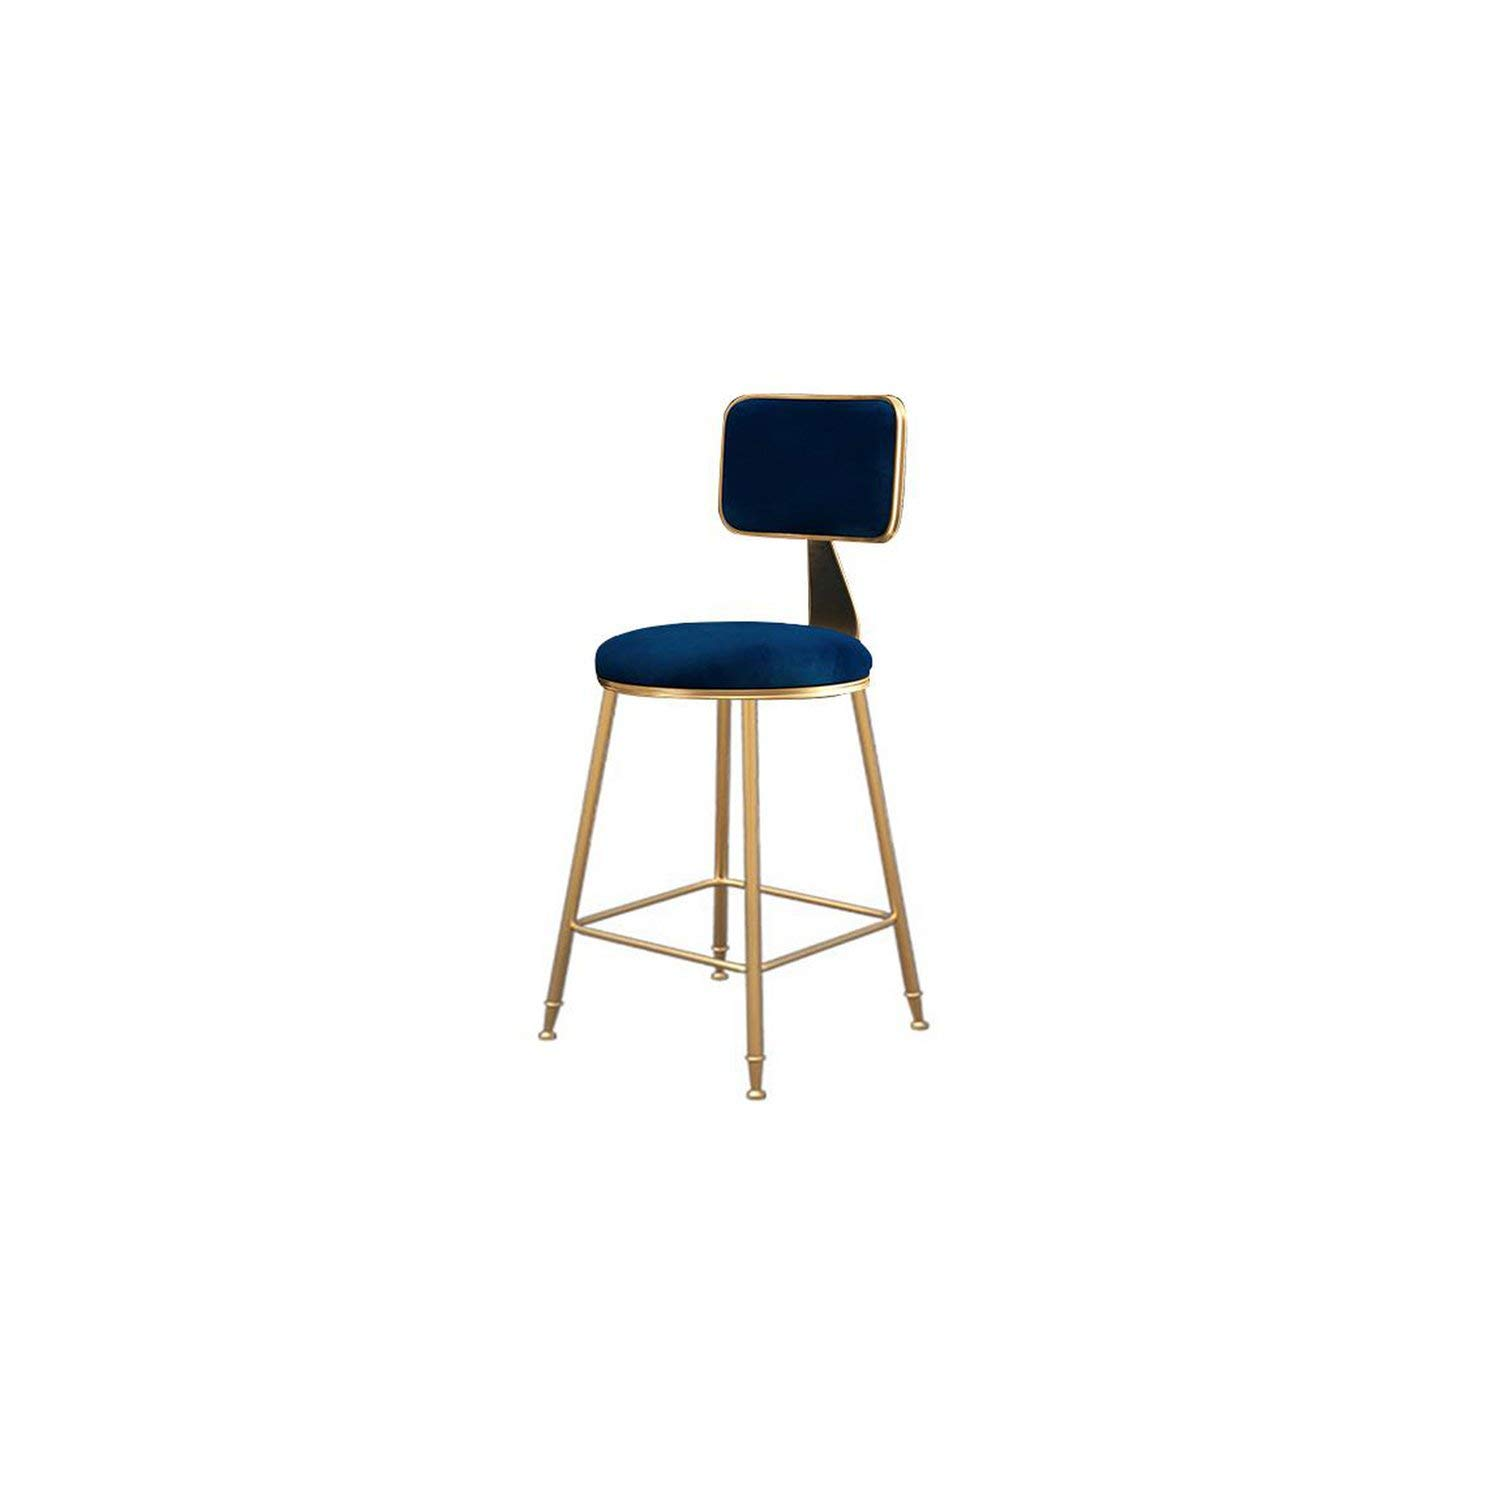 45cm Style21 tthappy76 Nordic Wrought Iron Bar Stool Modern Minimalist Home Backrest Dining Chair High Stool Cafe Bar Stool Bar Stool,65Cm Style19